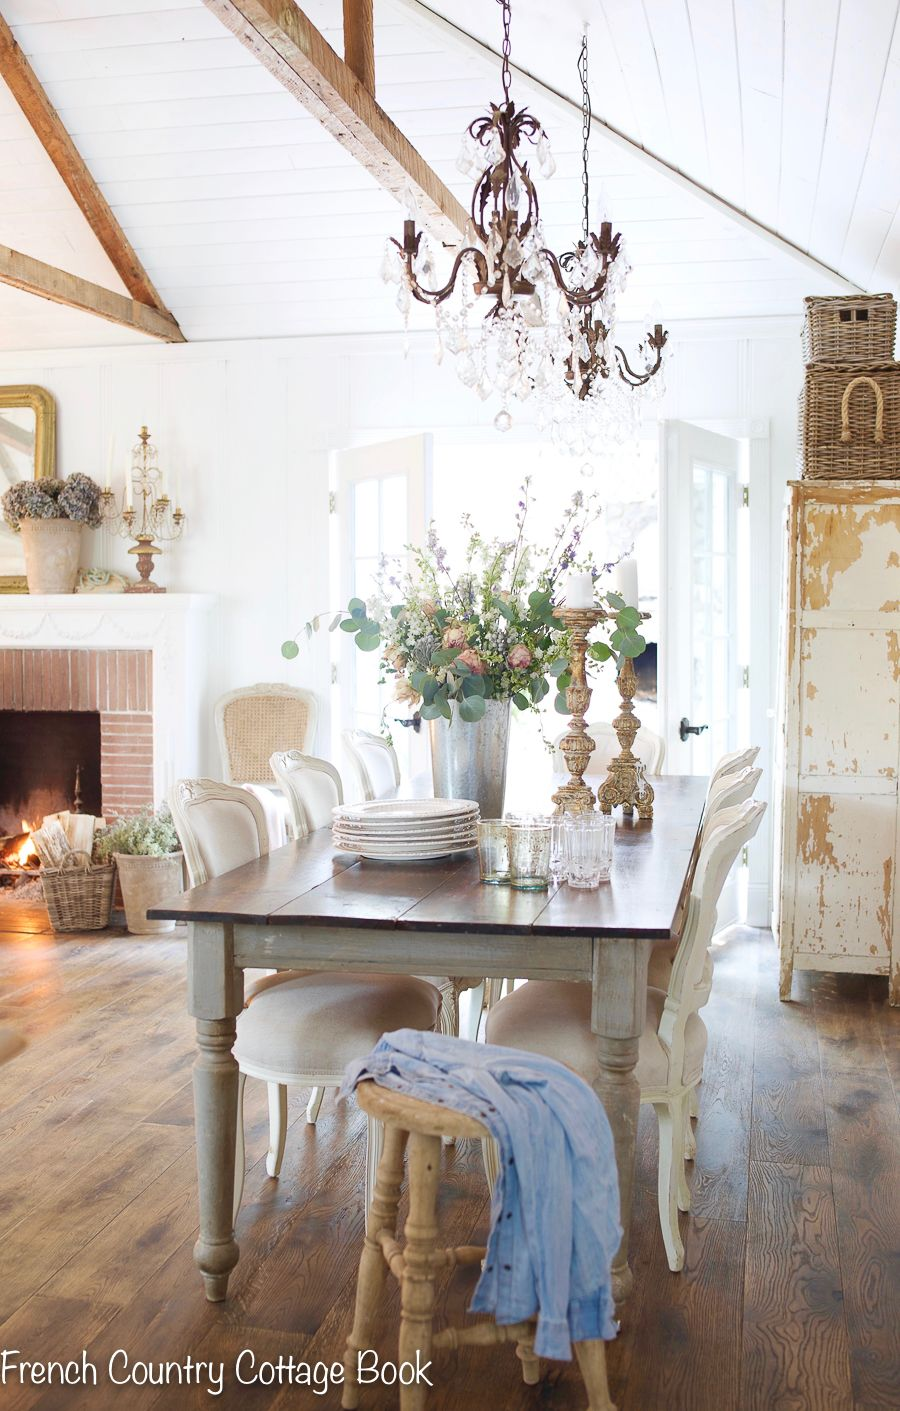 7 ways to use charming benches & stools in your home | French Country Cottage | I love using vintage chippy stools and benches for displaying treasures, flowers and vintage home accessories. In this blog post, I'm sharing how I decorate with benches and stools and where to shop for them. #frenchvintage #shabbychic